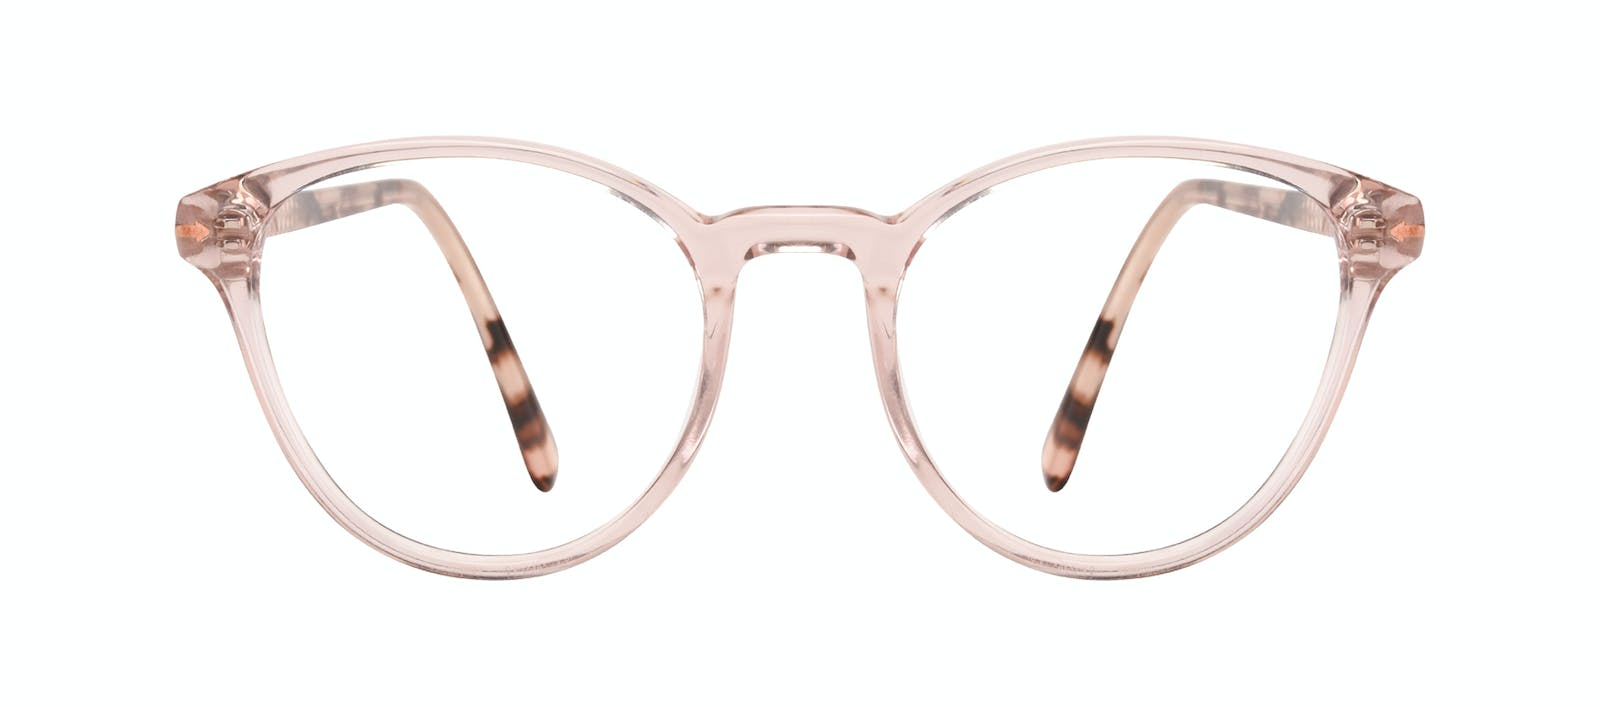 e6095d9689 Affordable Fashion Glasses Round Eyeglasses Women London Blush Front